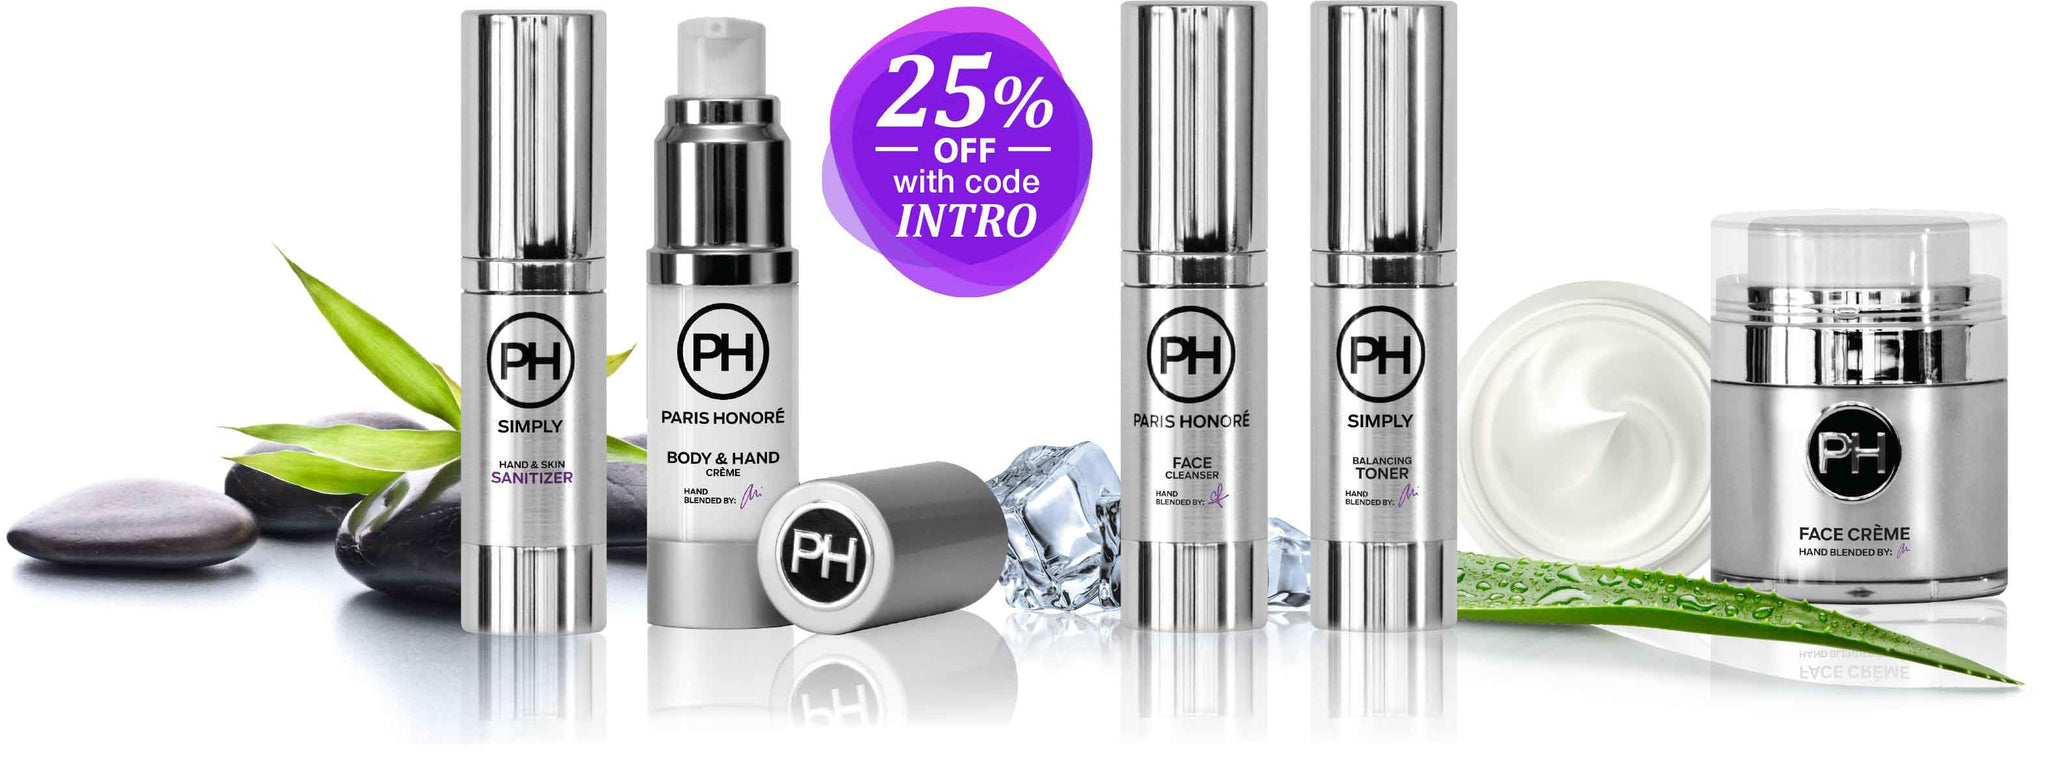 PH SIMPLY - ORGANIC SKINCARE DEVELOPED TO NOURISH AND PROTECT WITH LESS